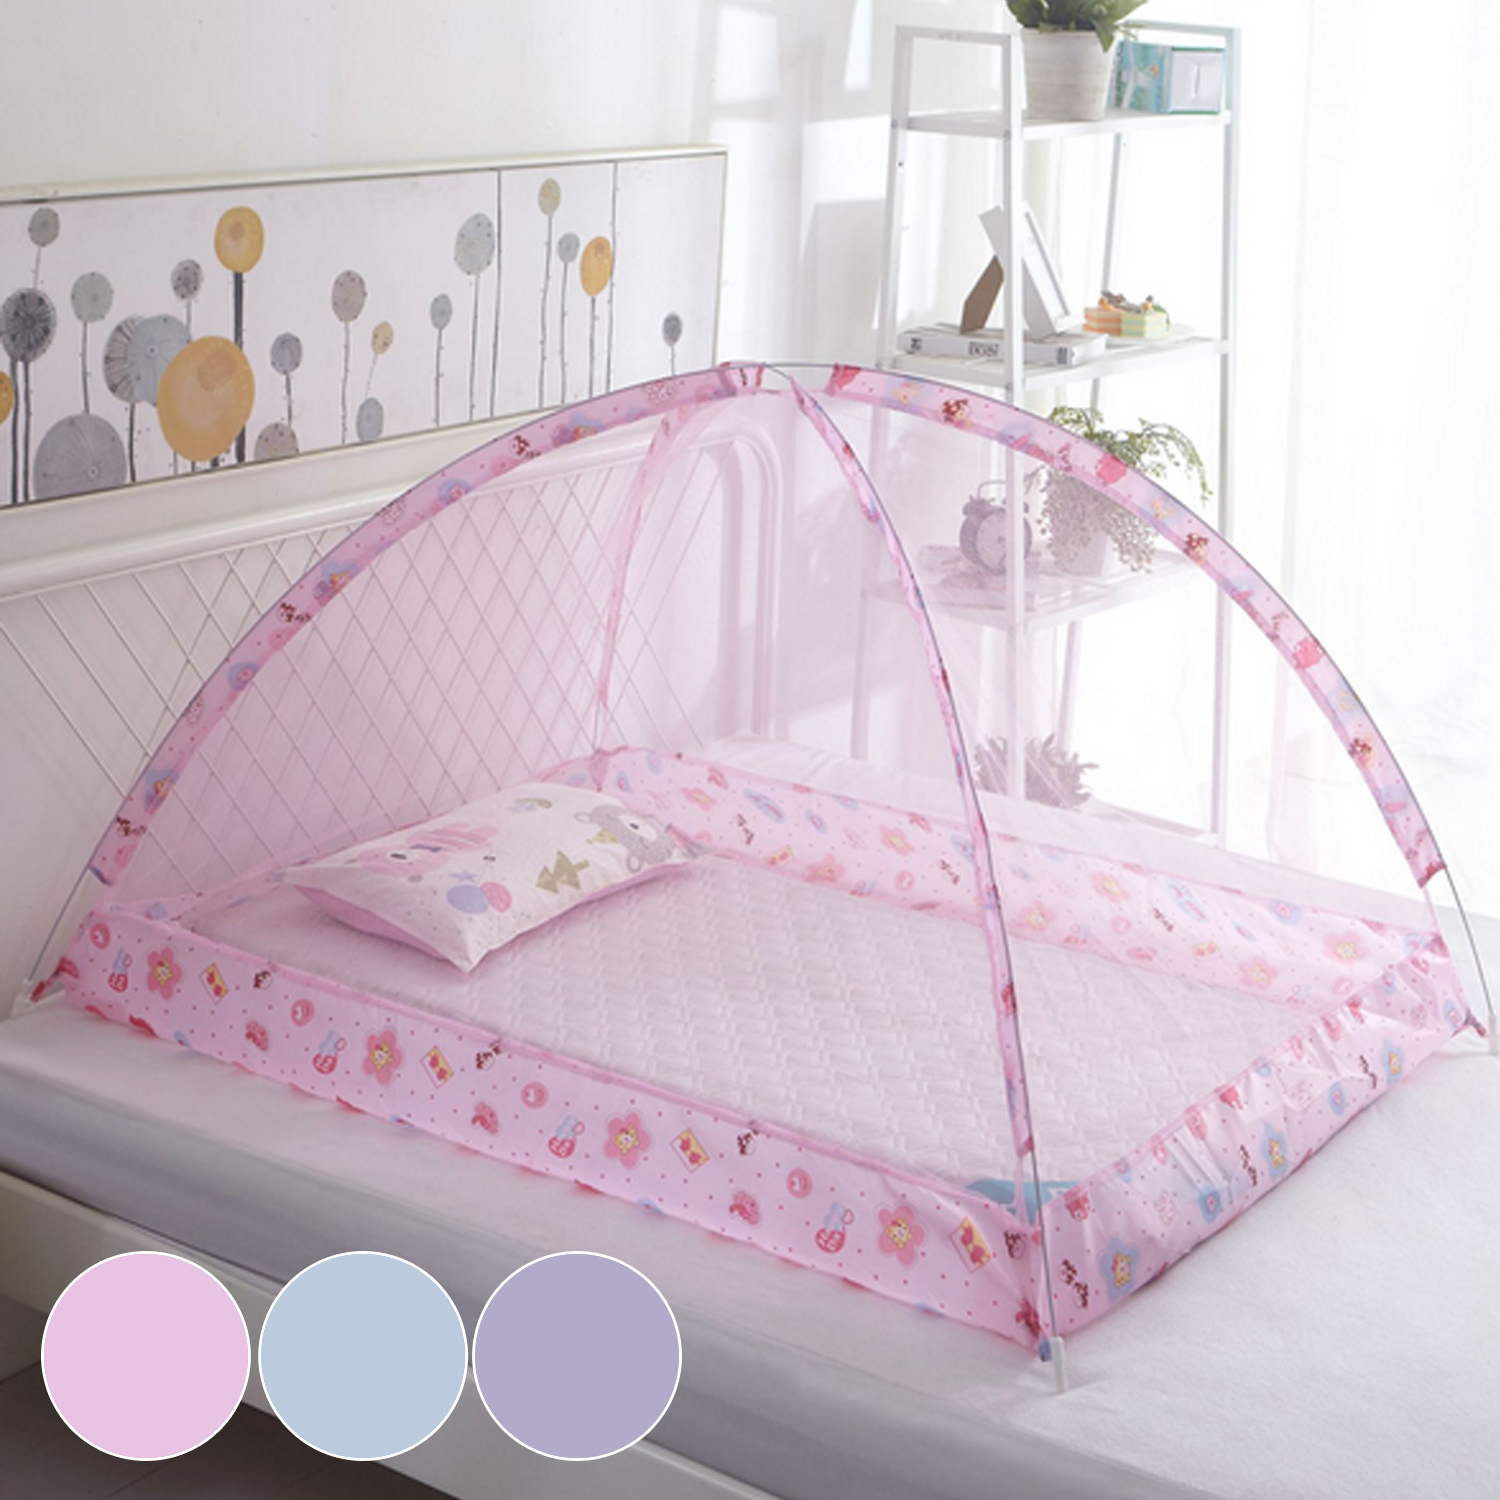 Portable Folding Baby Bed Mosquito Net Baby Kids Summer Cradle Bed Crib Sleeping Anti Mosquito Mesh Mongolian Mosquito Net Tent